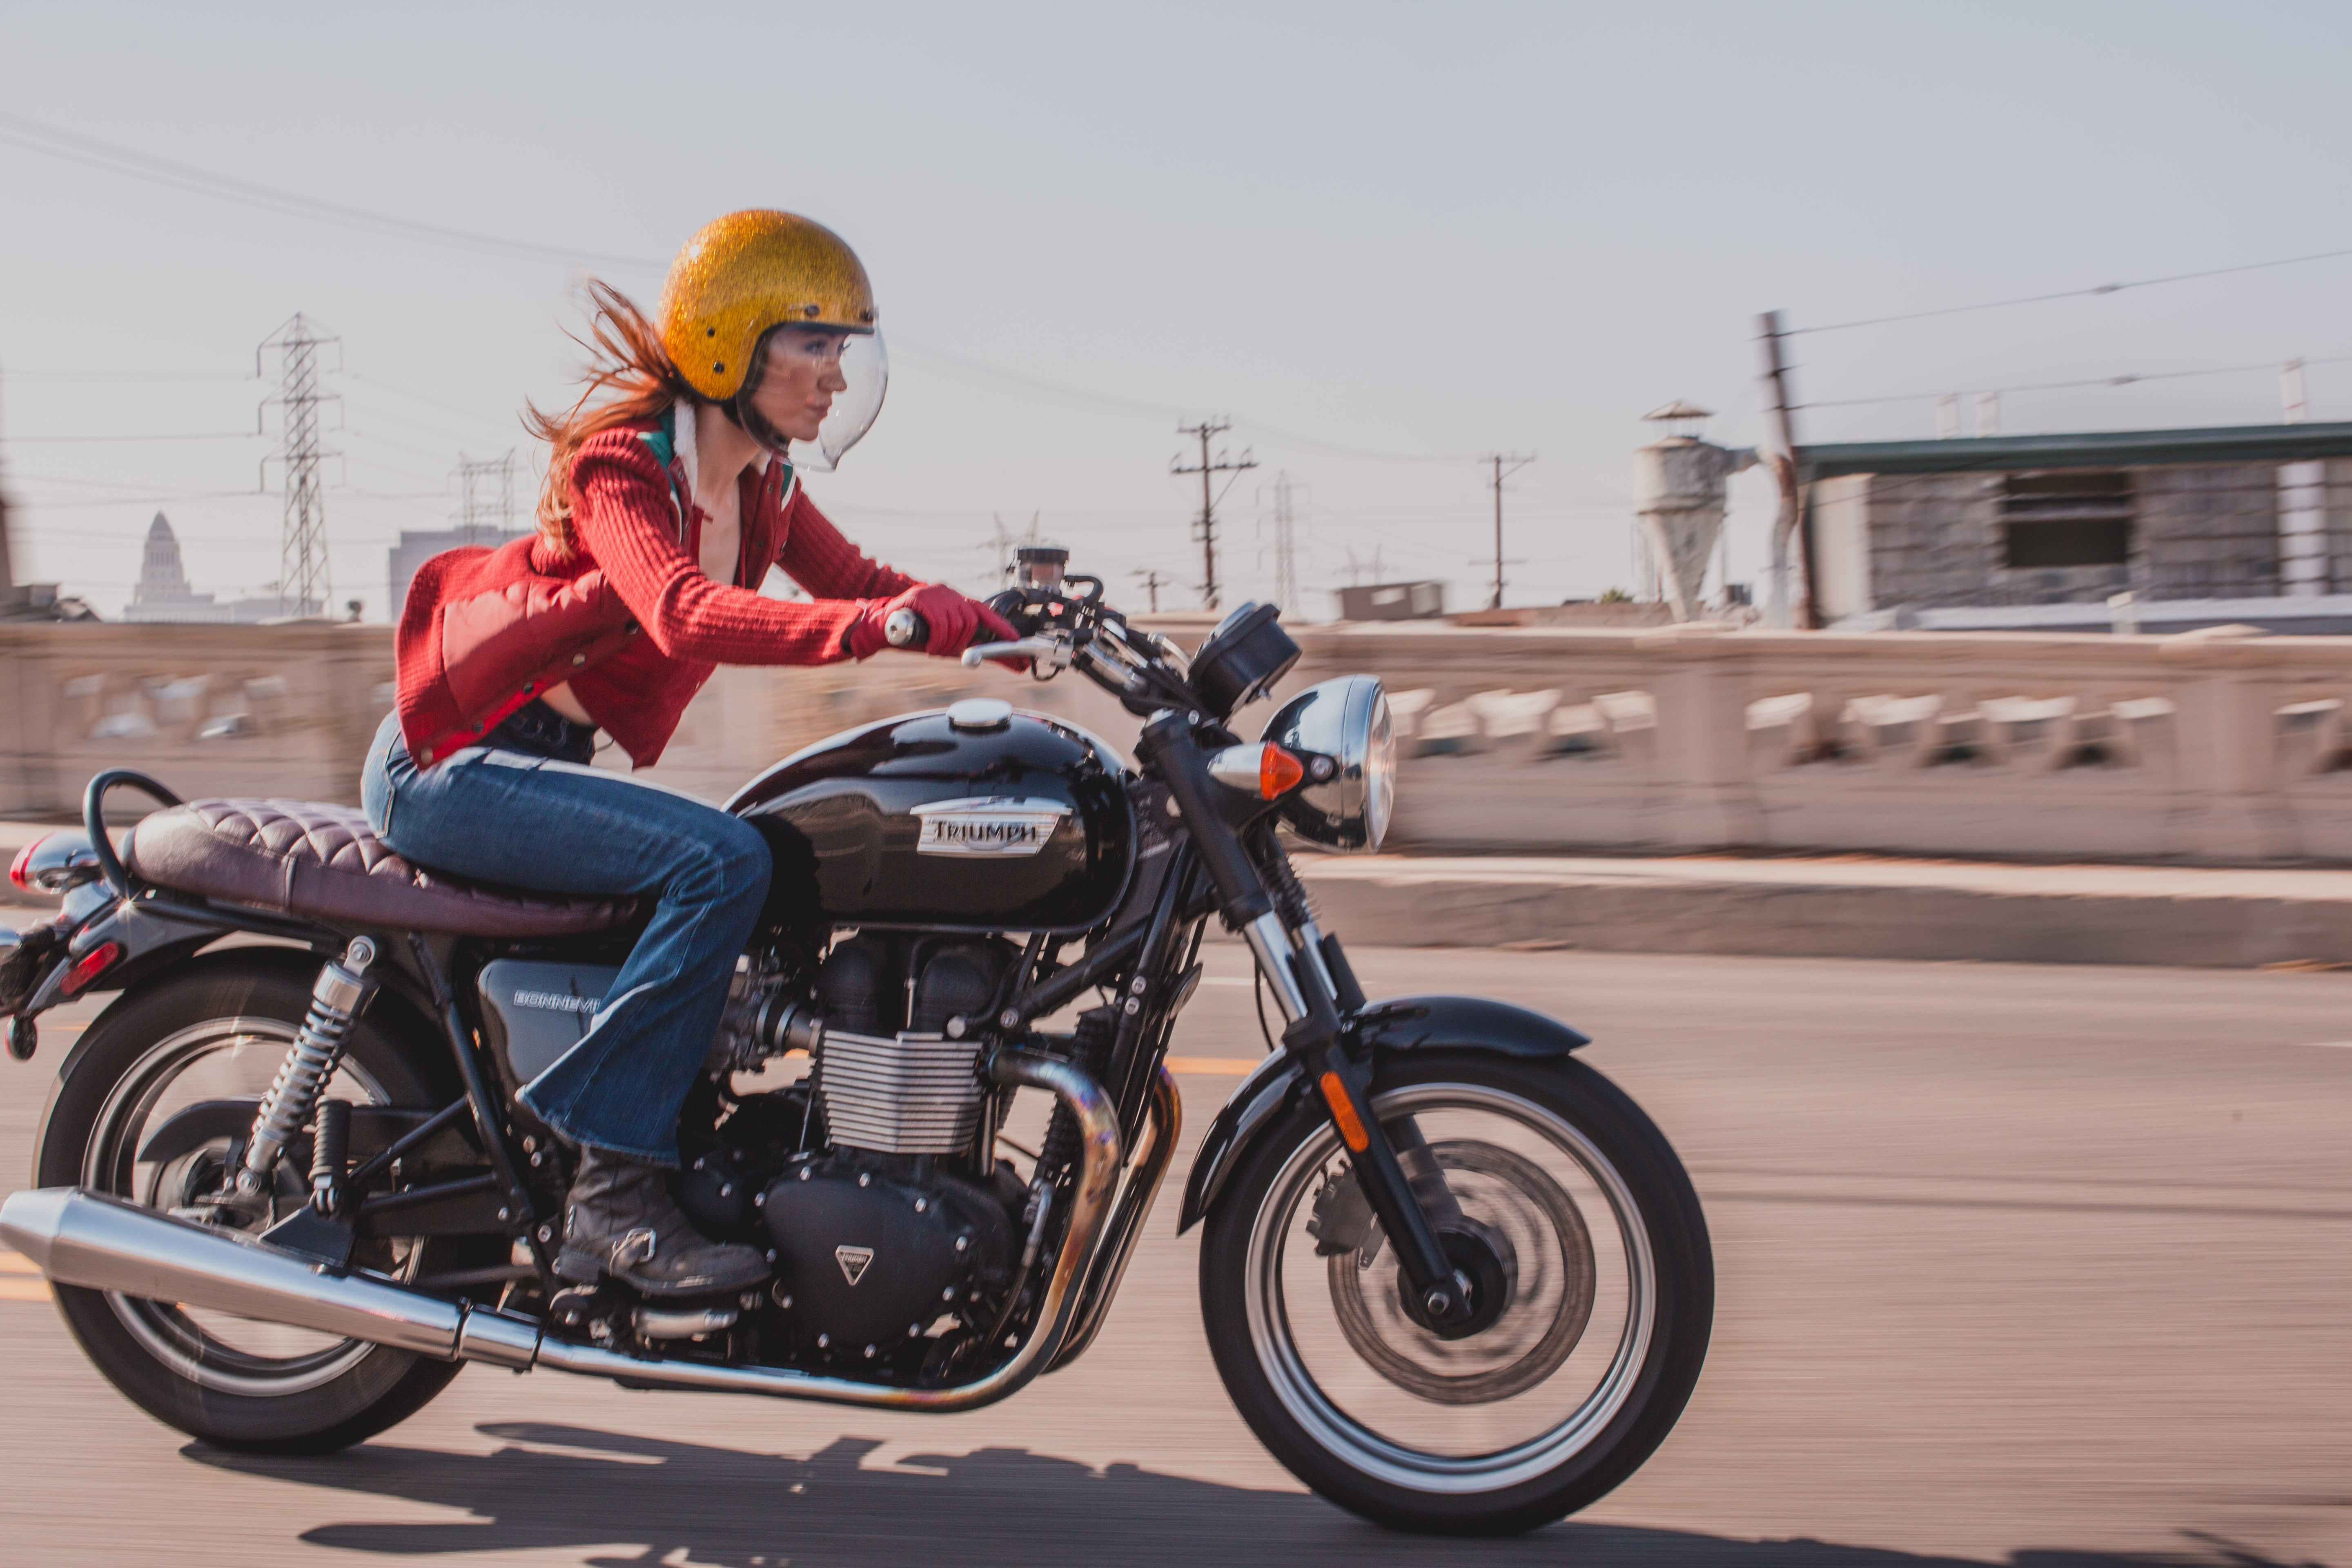 Motorcycle Rides Christmas Day 2020 Top 10 Motorcycle Rides in Los Angeles   Discover Los Angeles